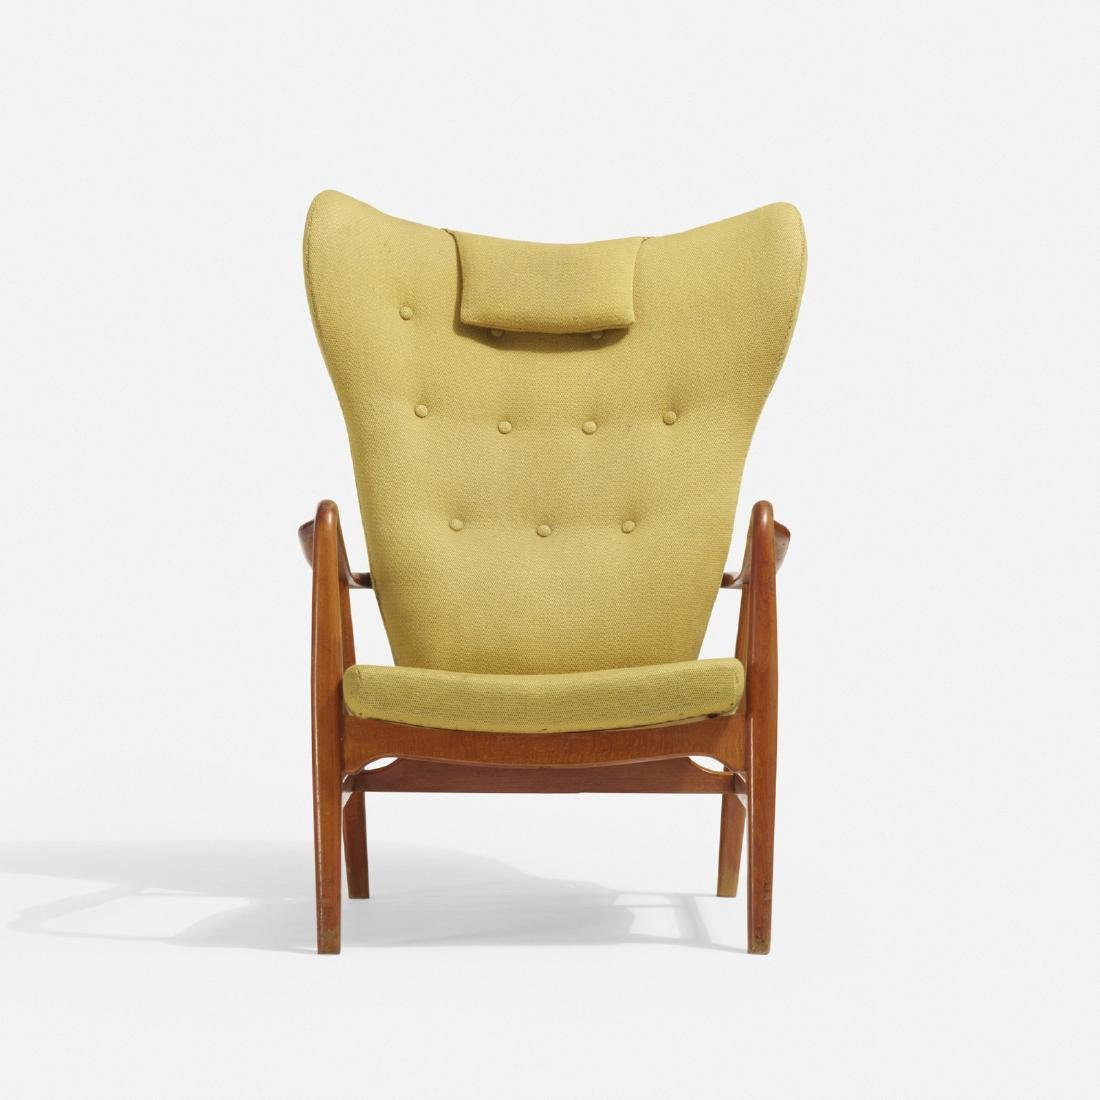 Acton Schubel and Ib Madsen, wingback armchair - 2